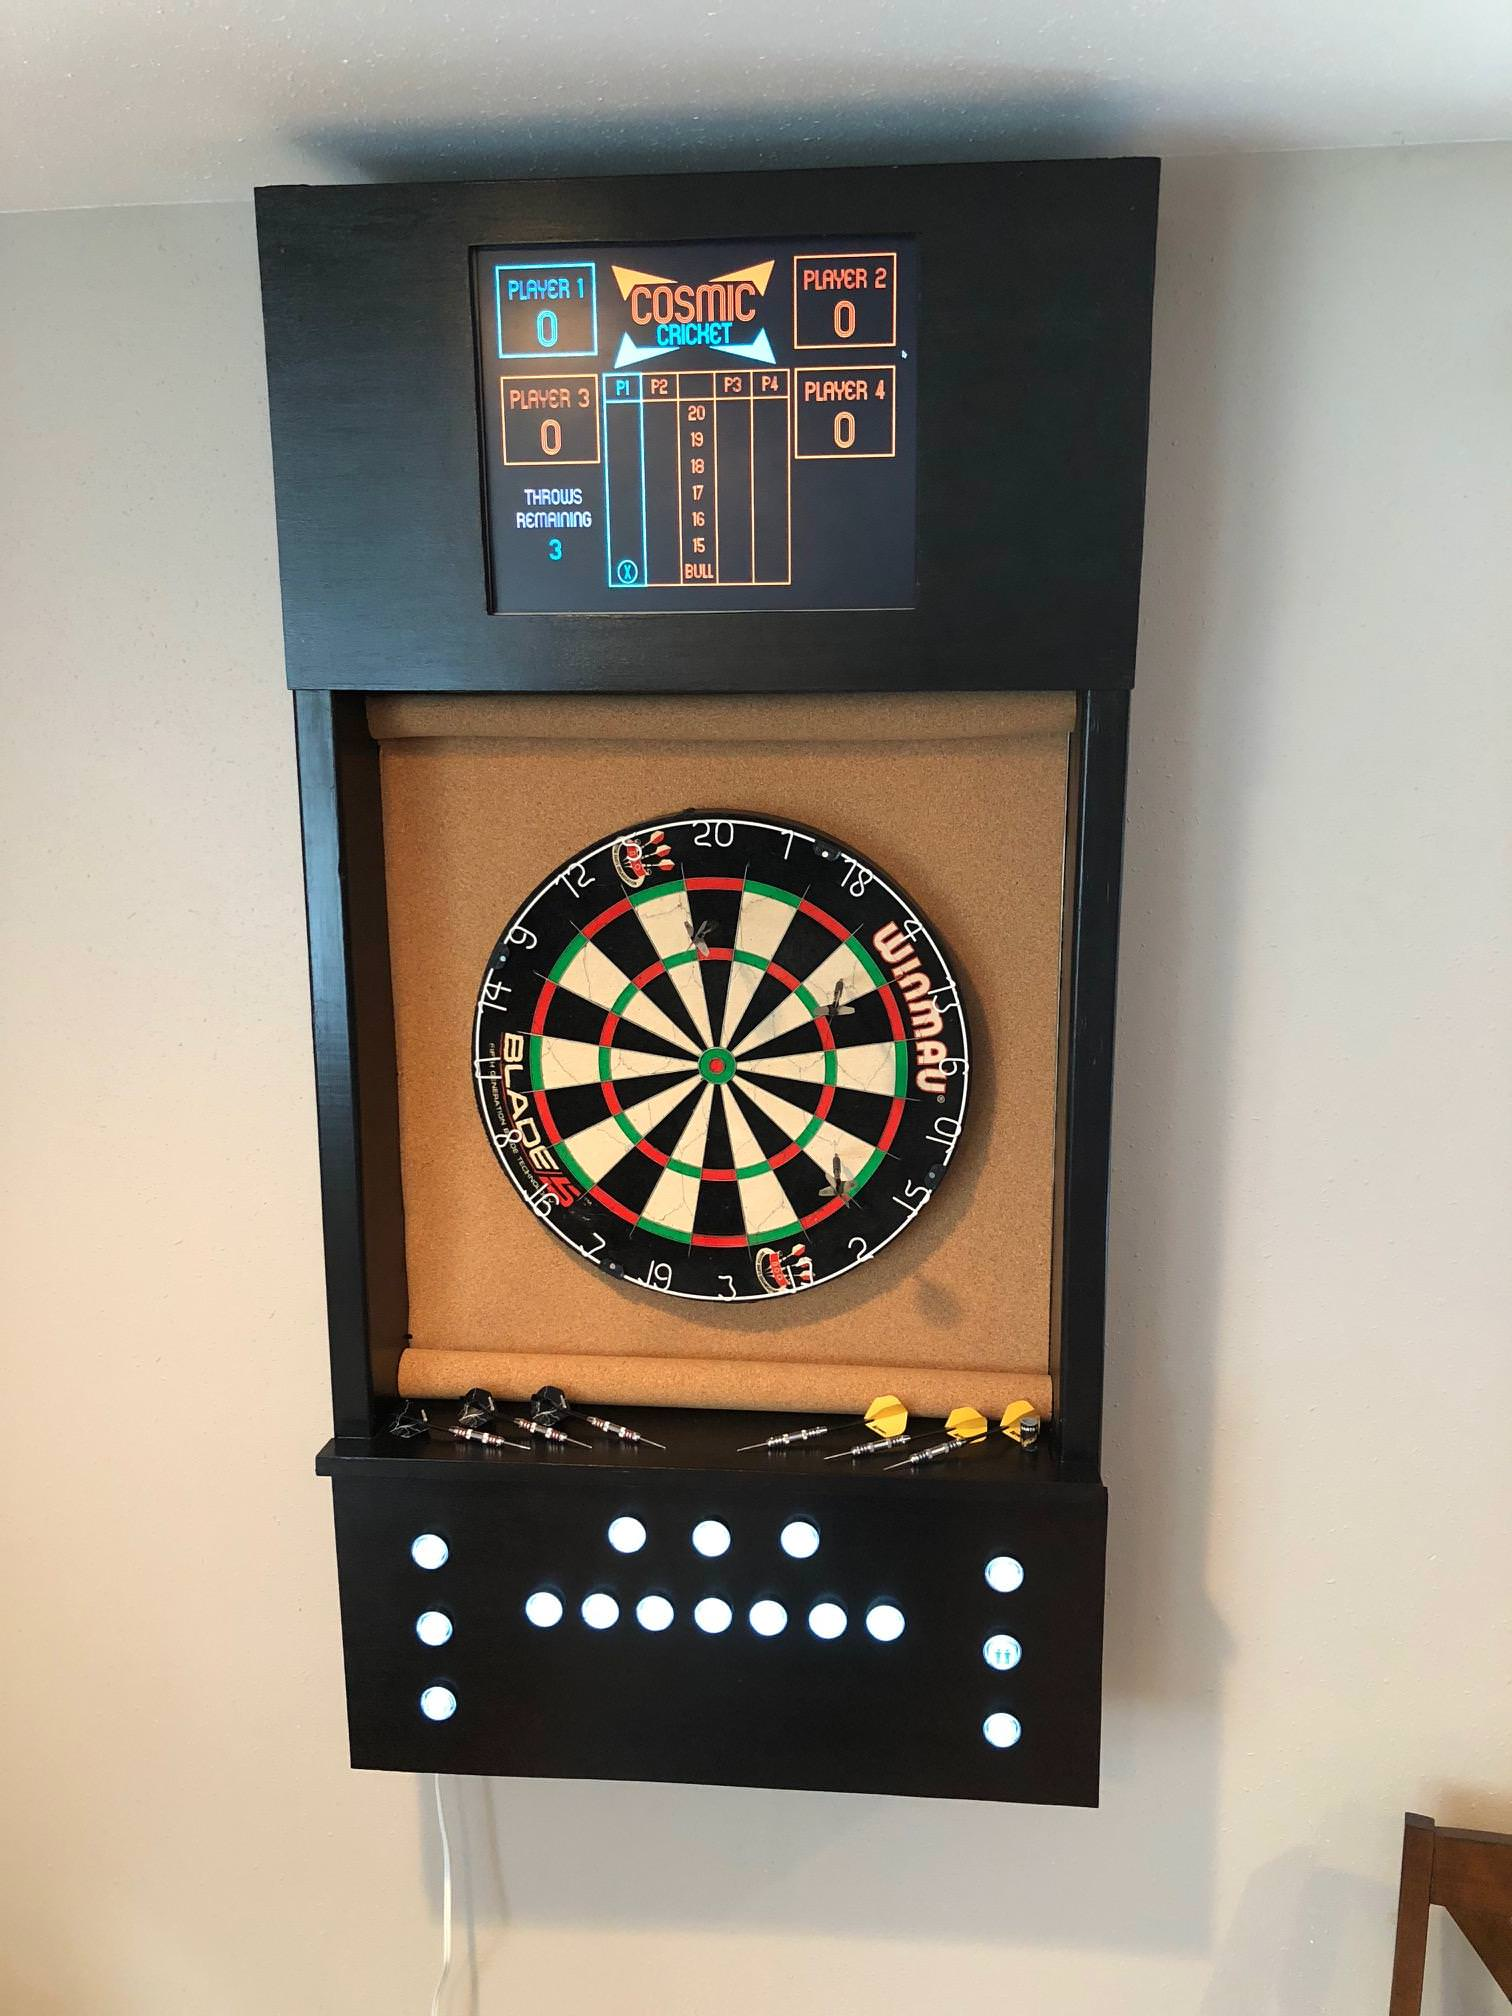 Github Ryan 7 Cosmic Cricket Darts Software For The Popular Darts